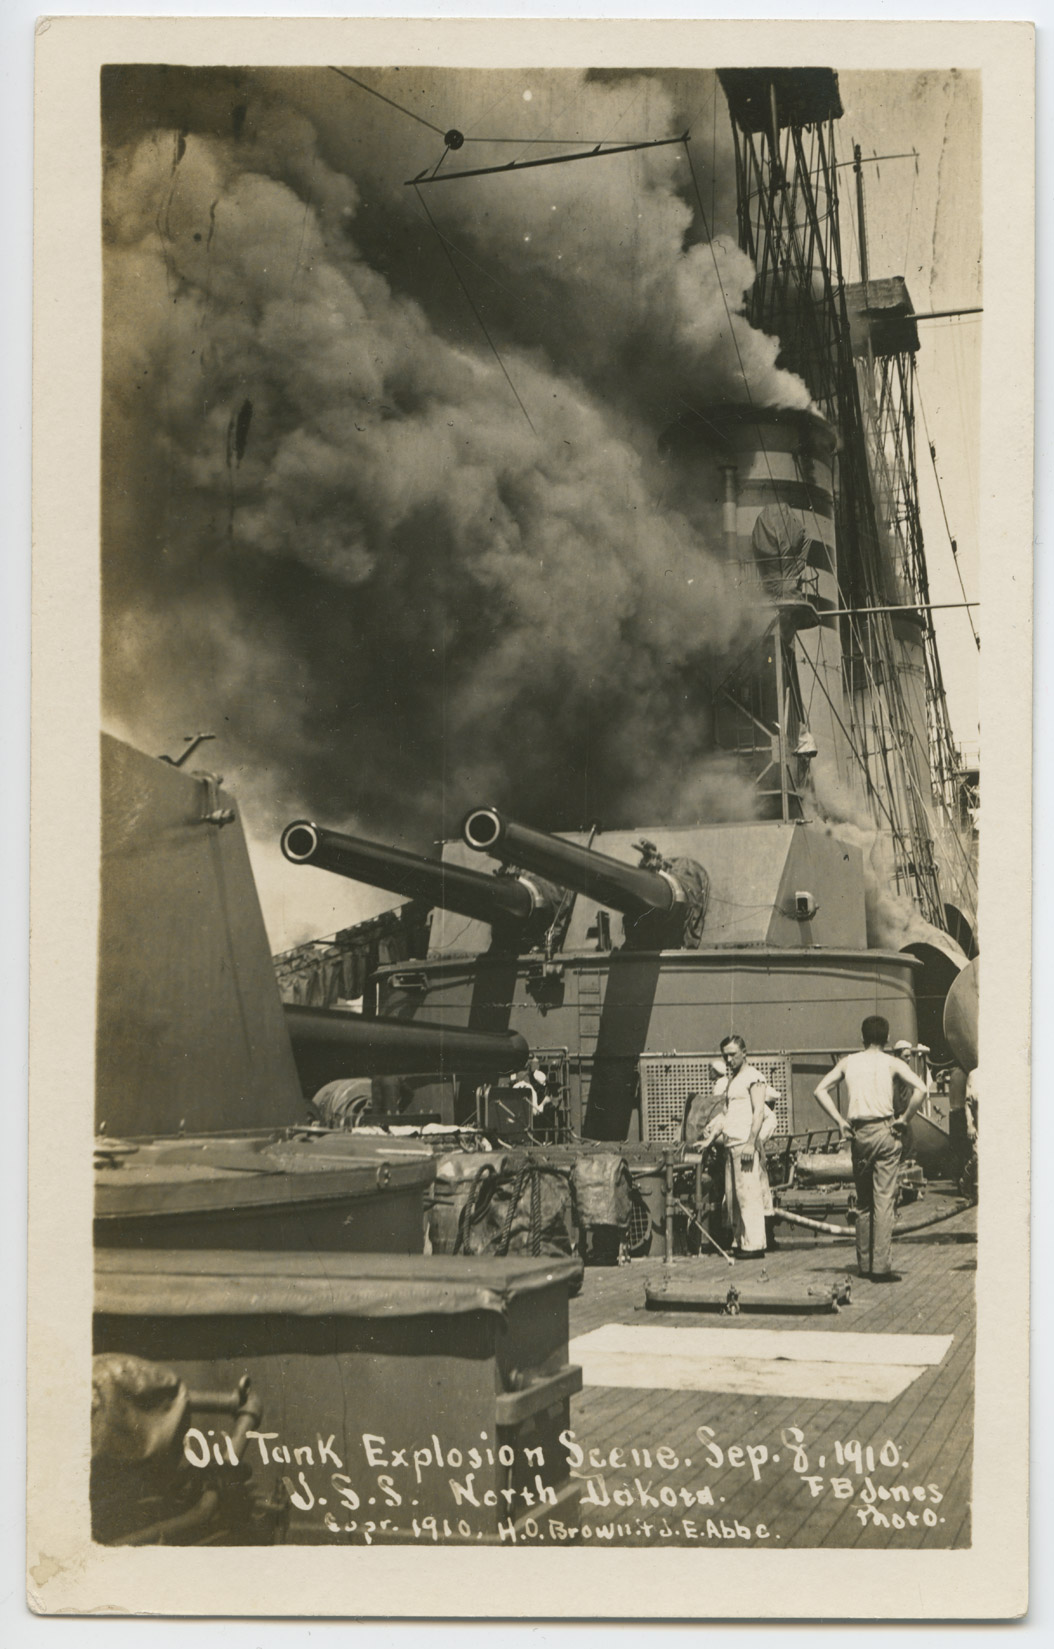 Explosion and fire aboard the USS North Dakota